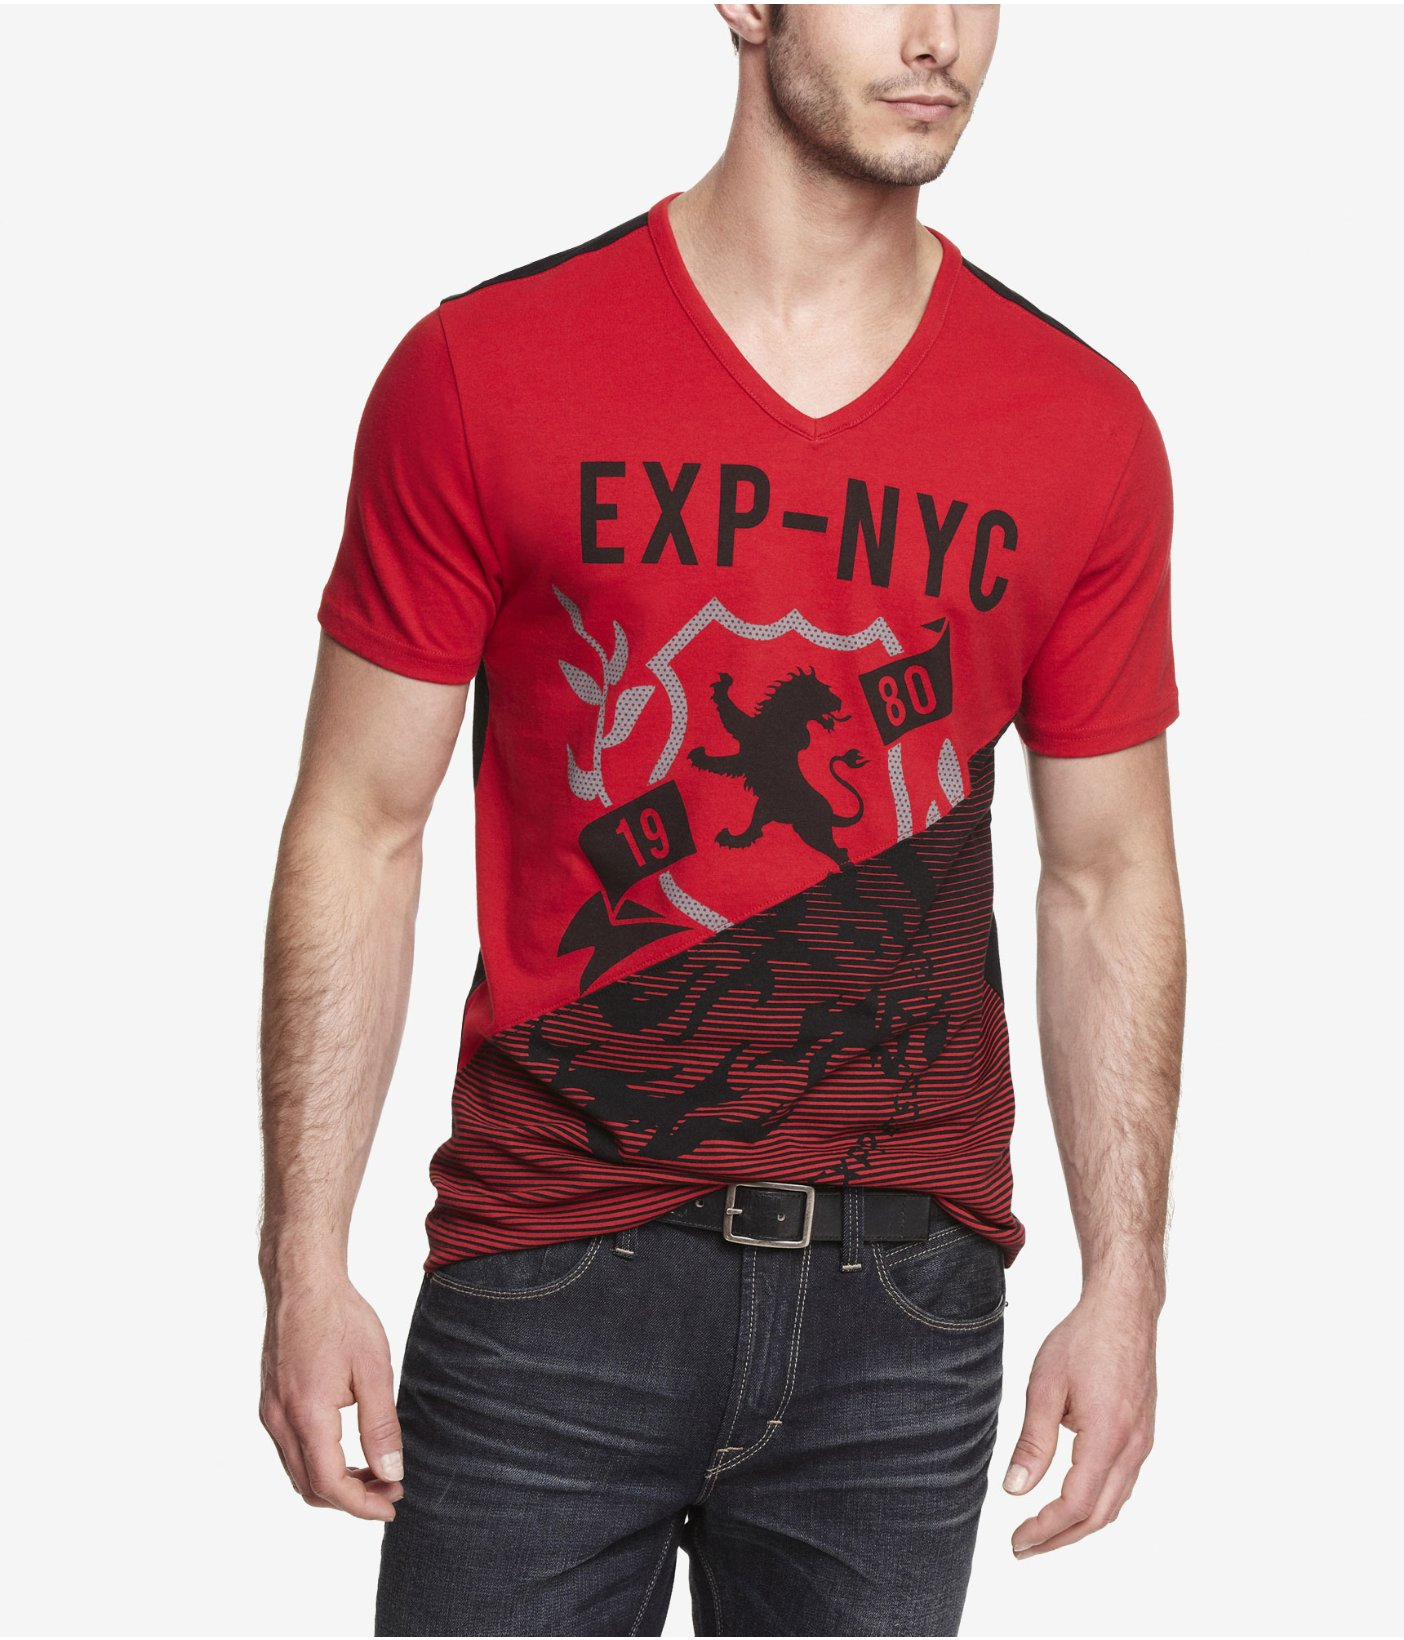 Lyst Express Color Block Graphic Tee Mix Master Exp In